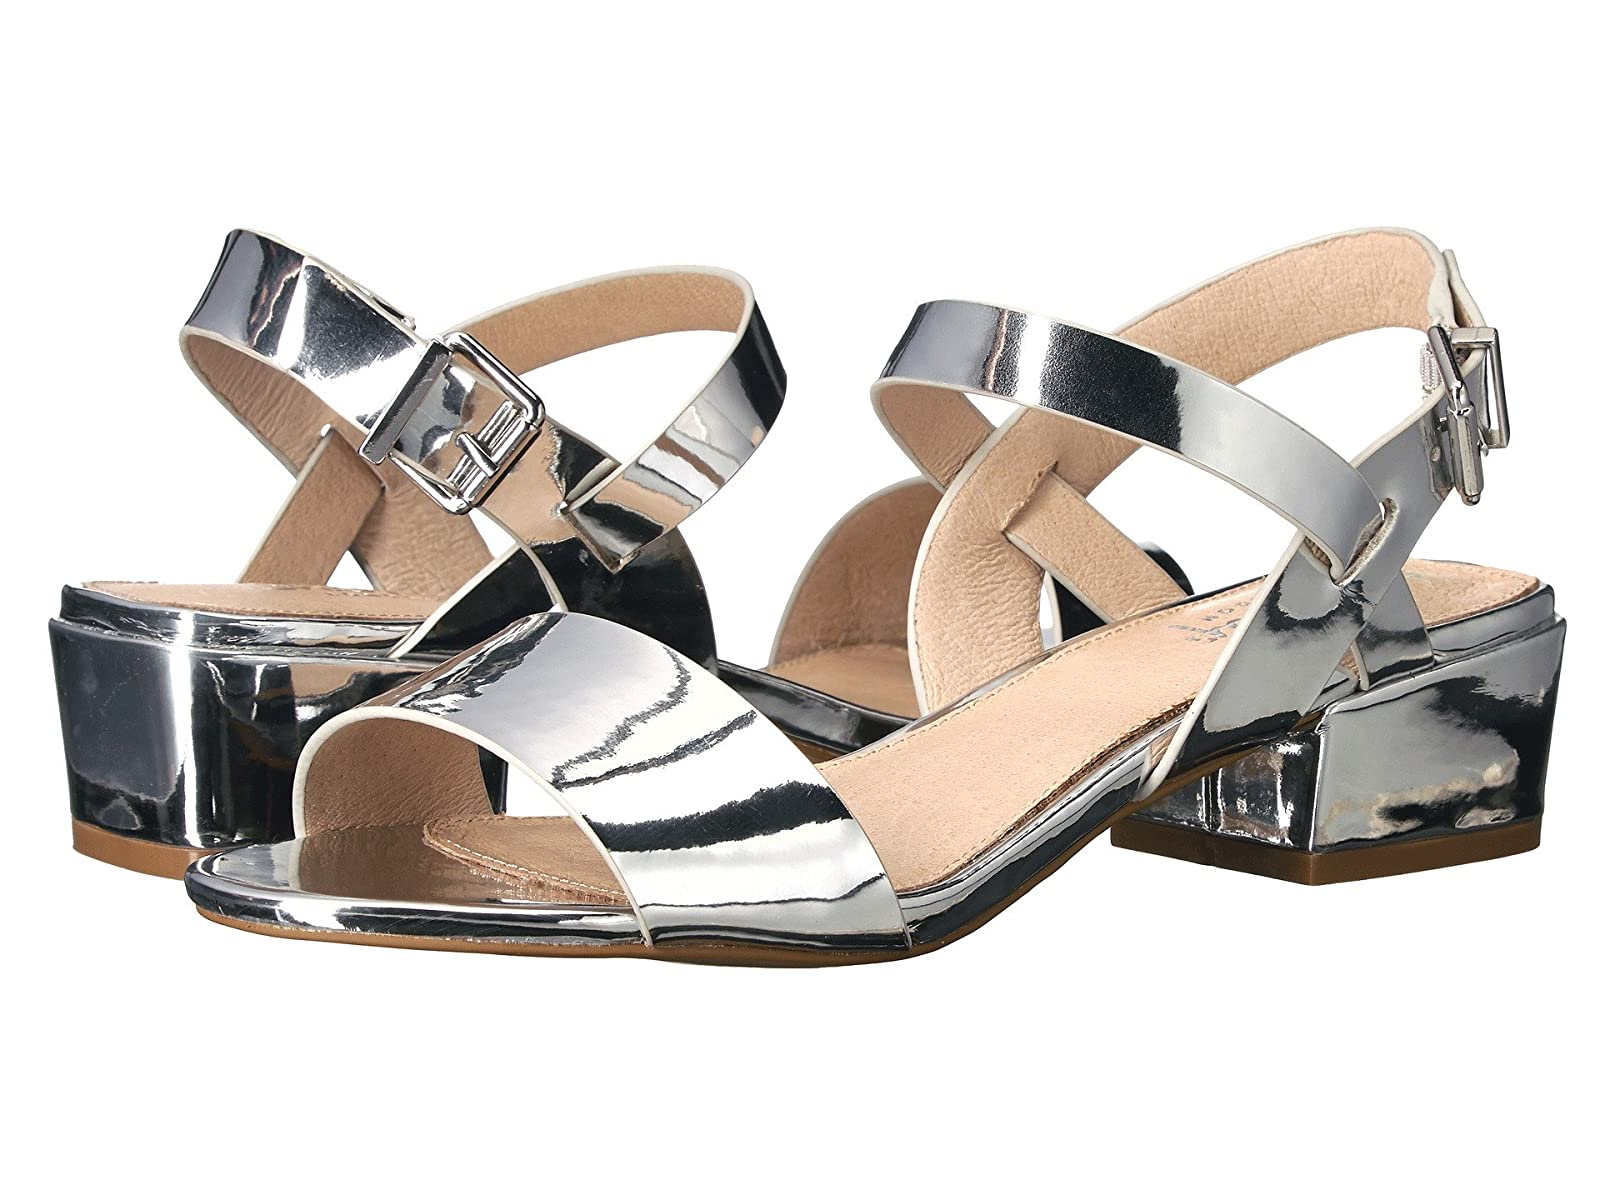 Shellys London Dacey SandalCheap and distinctive eye-catching shoes